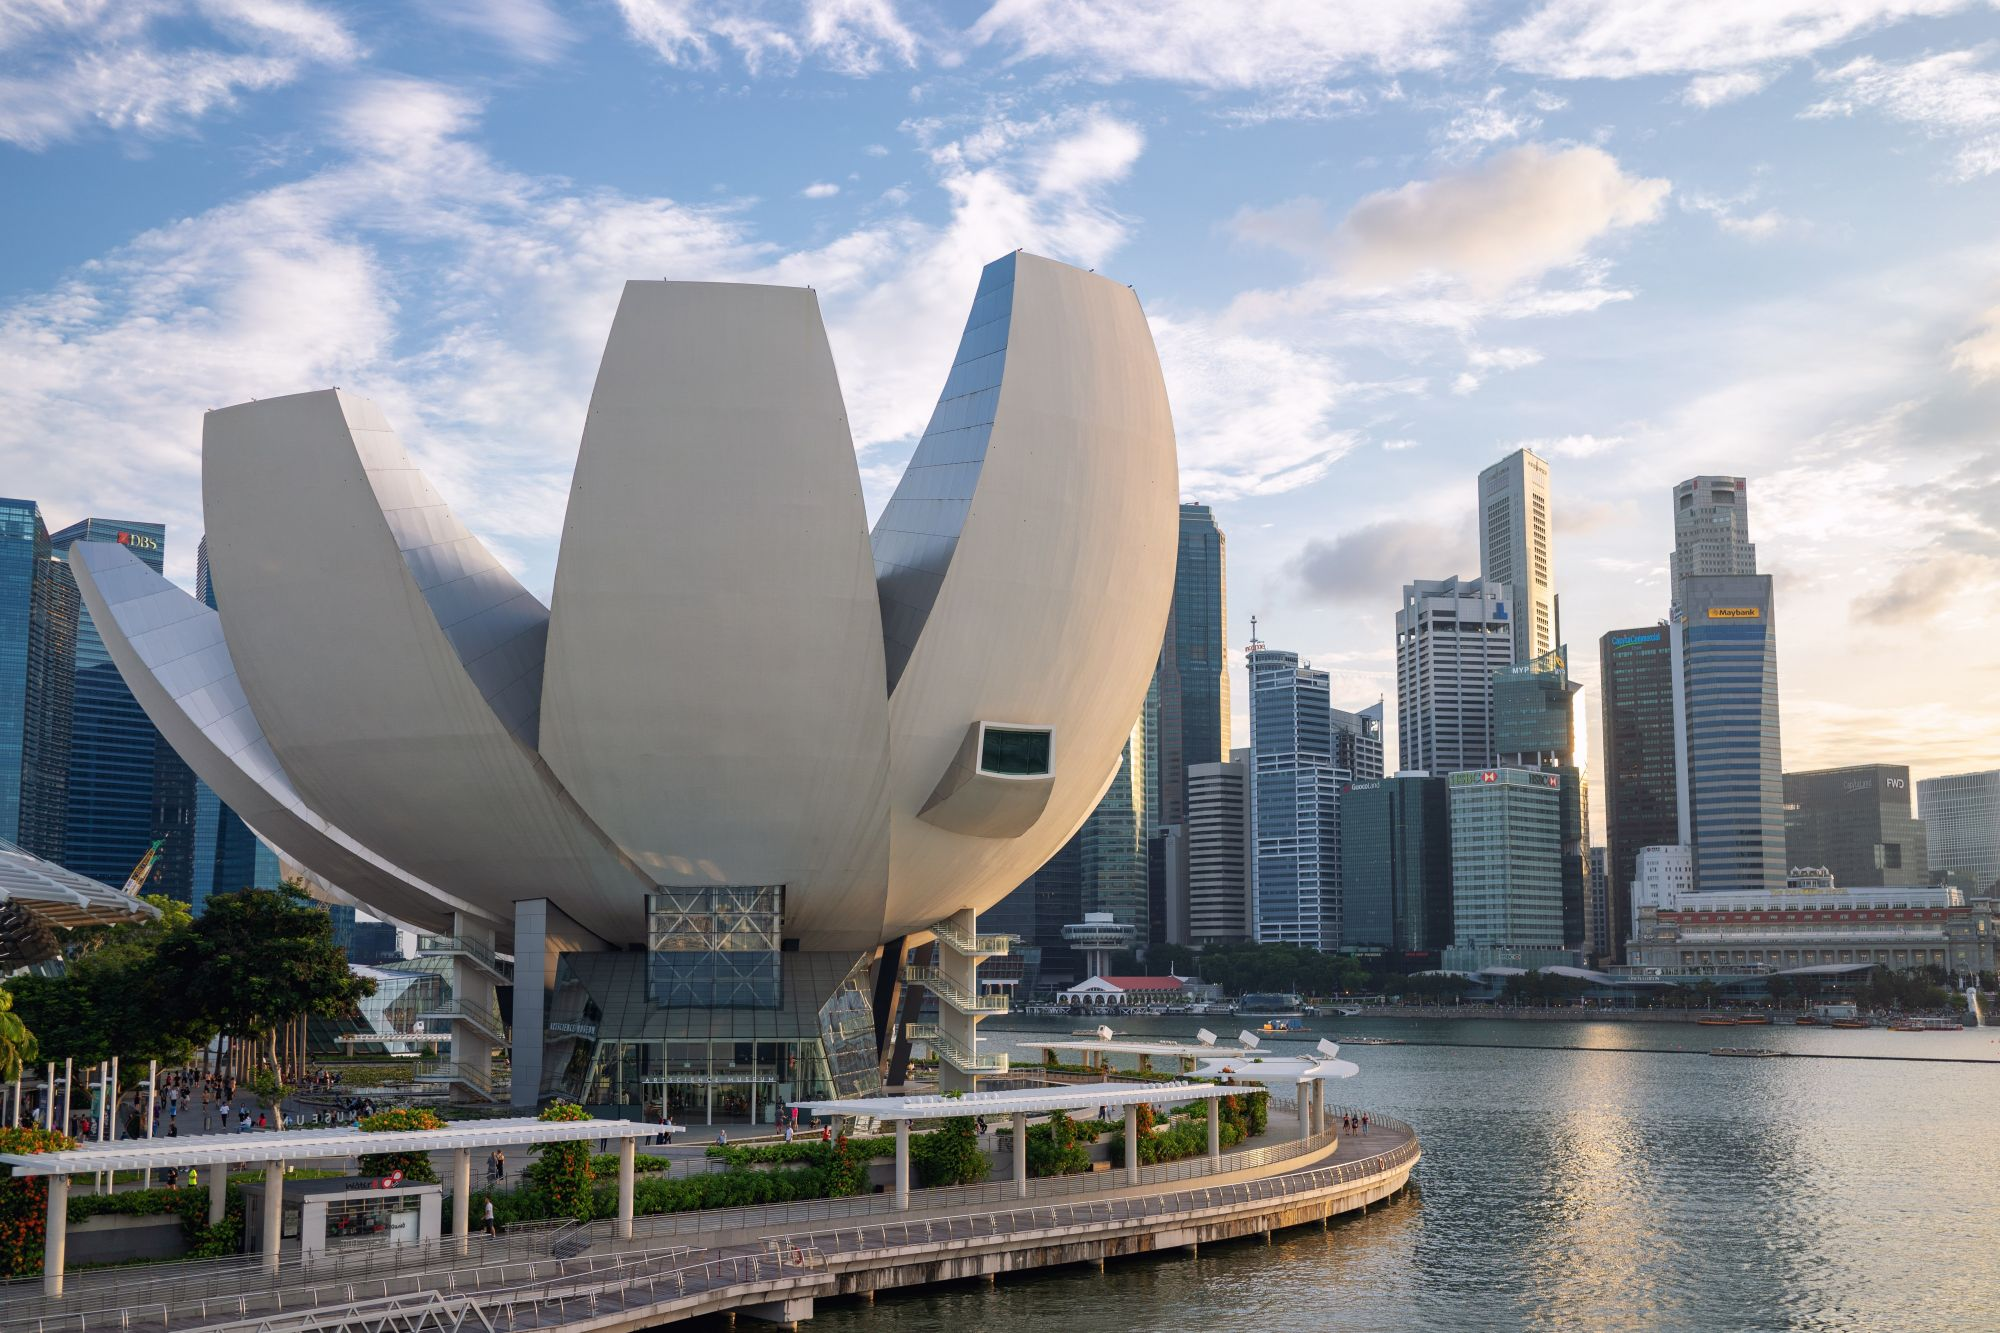 Editors' Picks: The Local Tours and Tourist Attractions that We Love in Singapore – Tatler Singapore